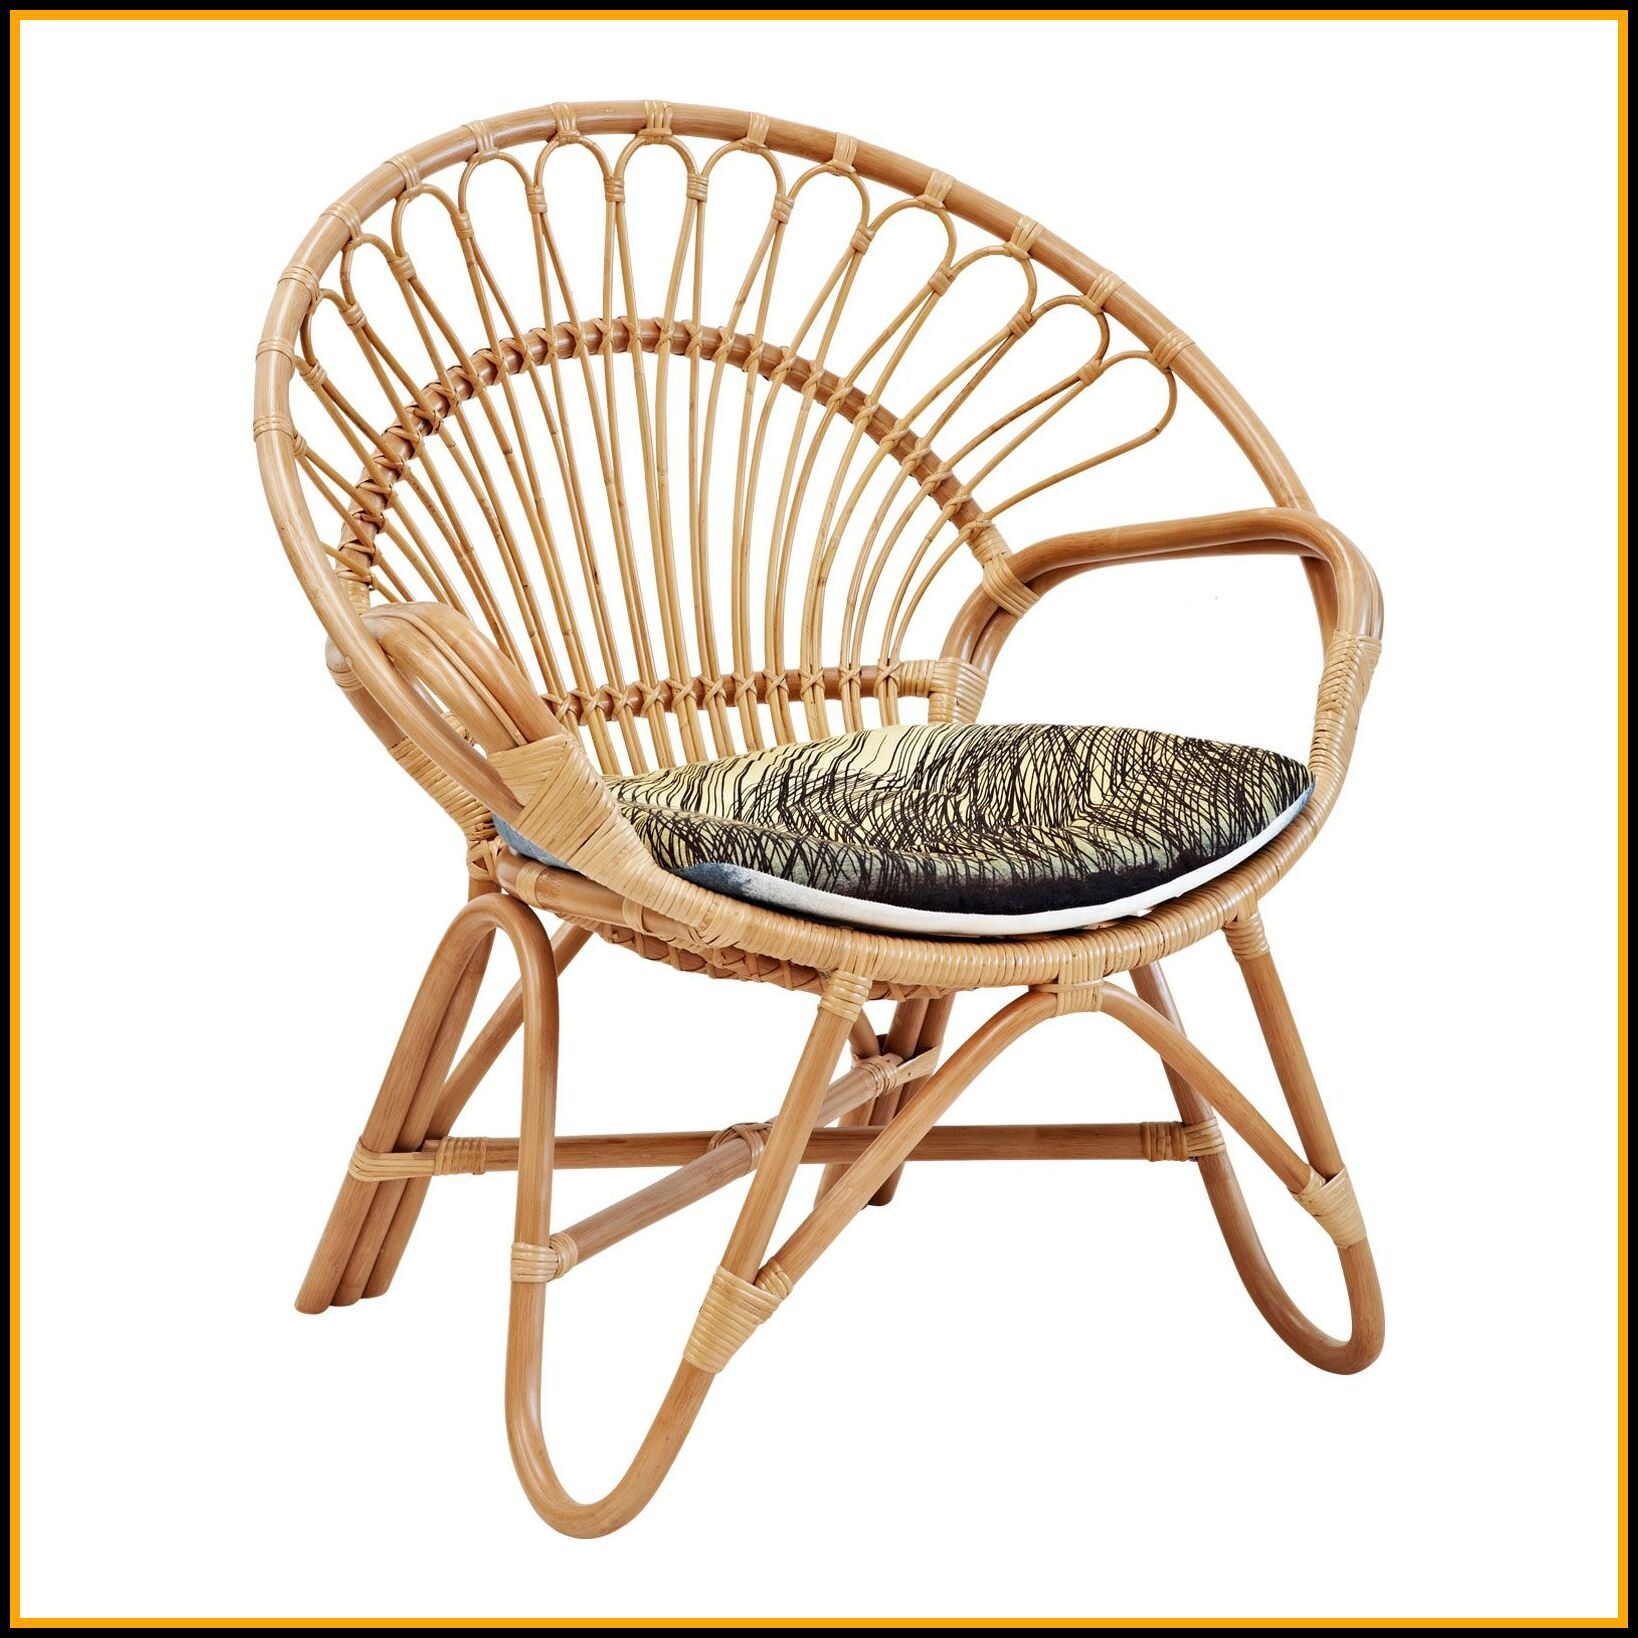 78 Reference Of Round Wicker Chair Base In 2020 Round Wicker Chair Wicker Chair Round Chair